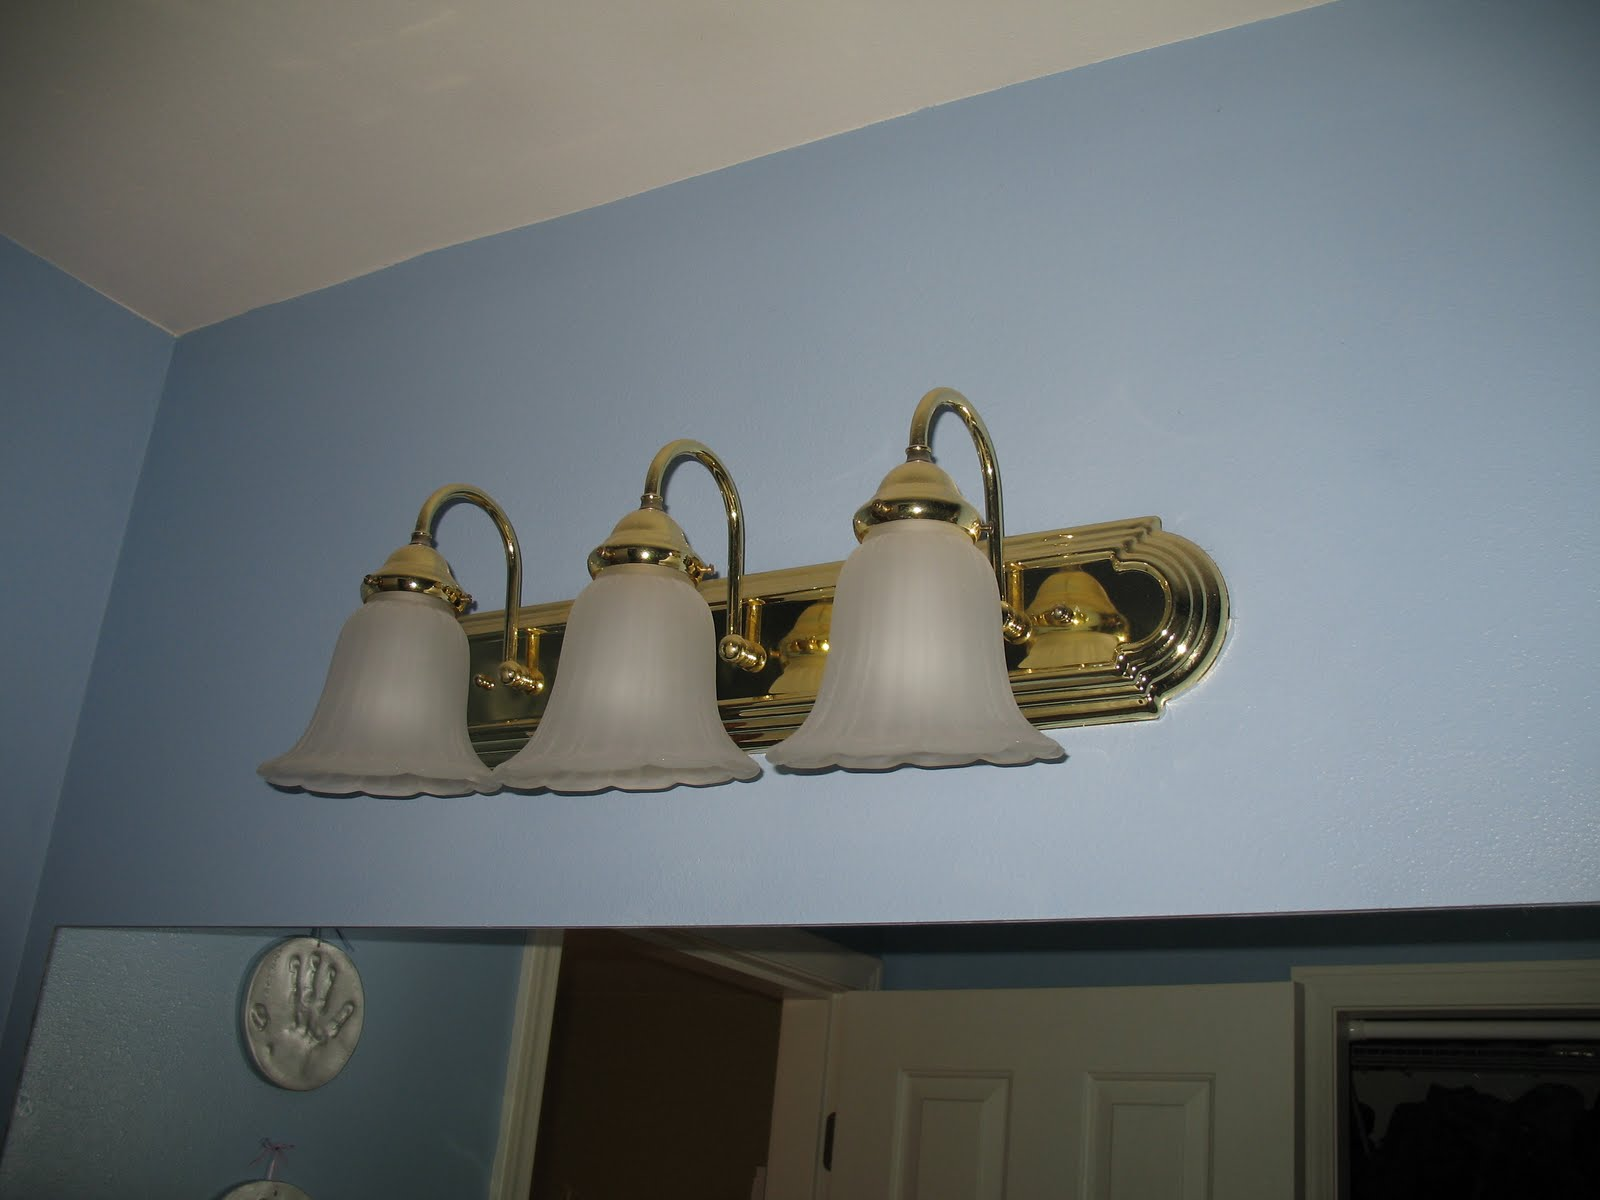 Bathroom Lighting Lights Fixtures: This Thrifty House: Bathroom Fixture Fix